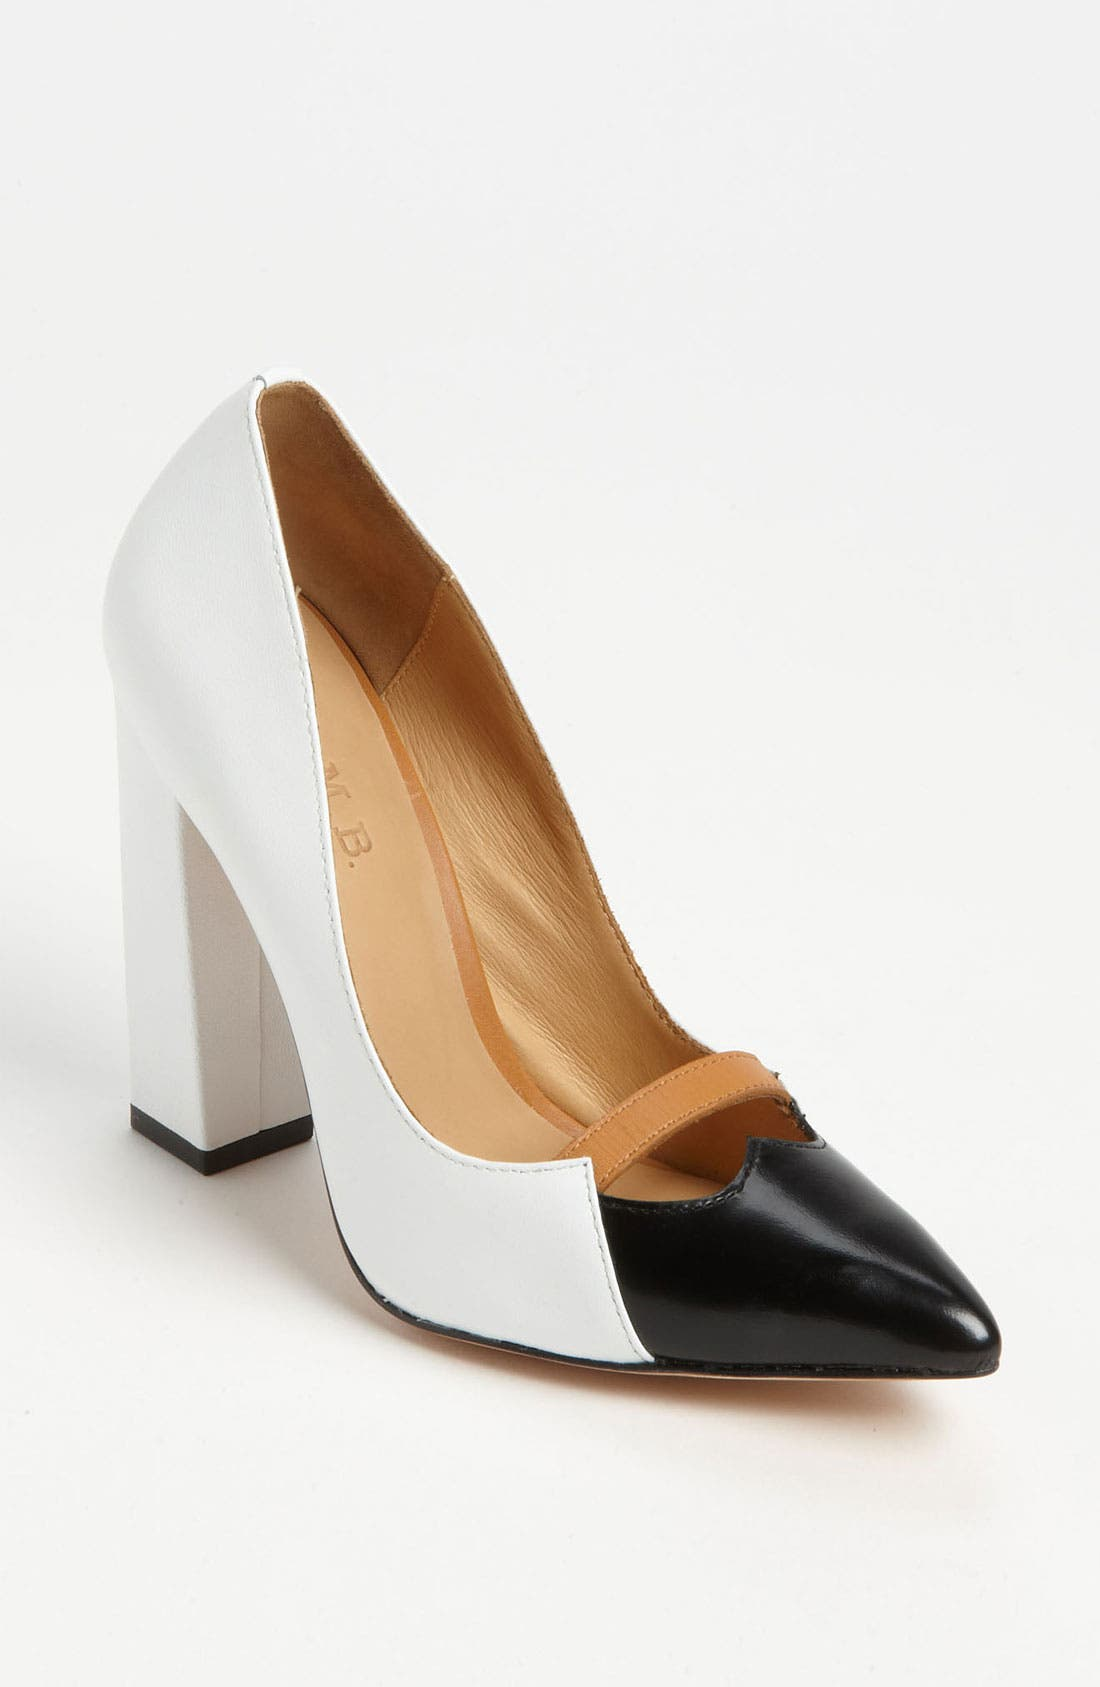 Alternate Image 1 Selected - L.A.M.B. 'Janaye' Pump